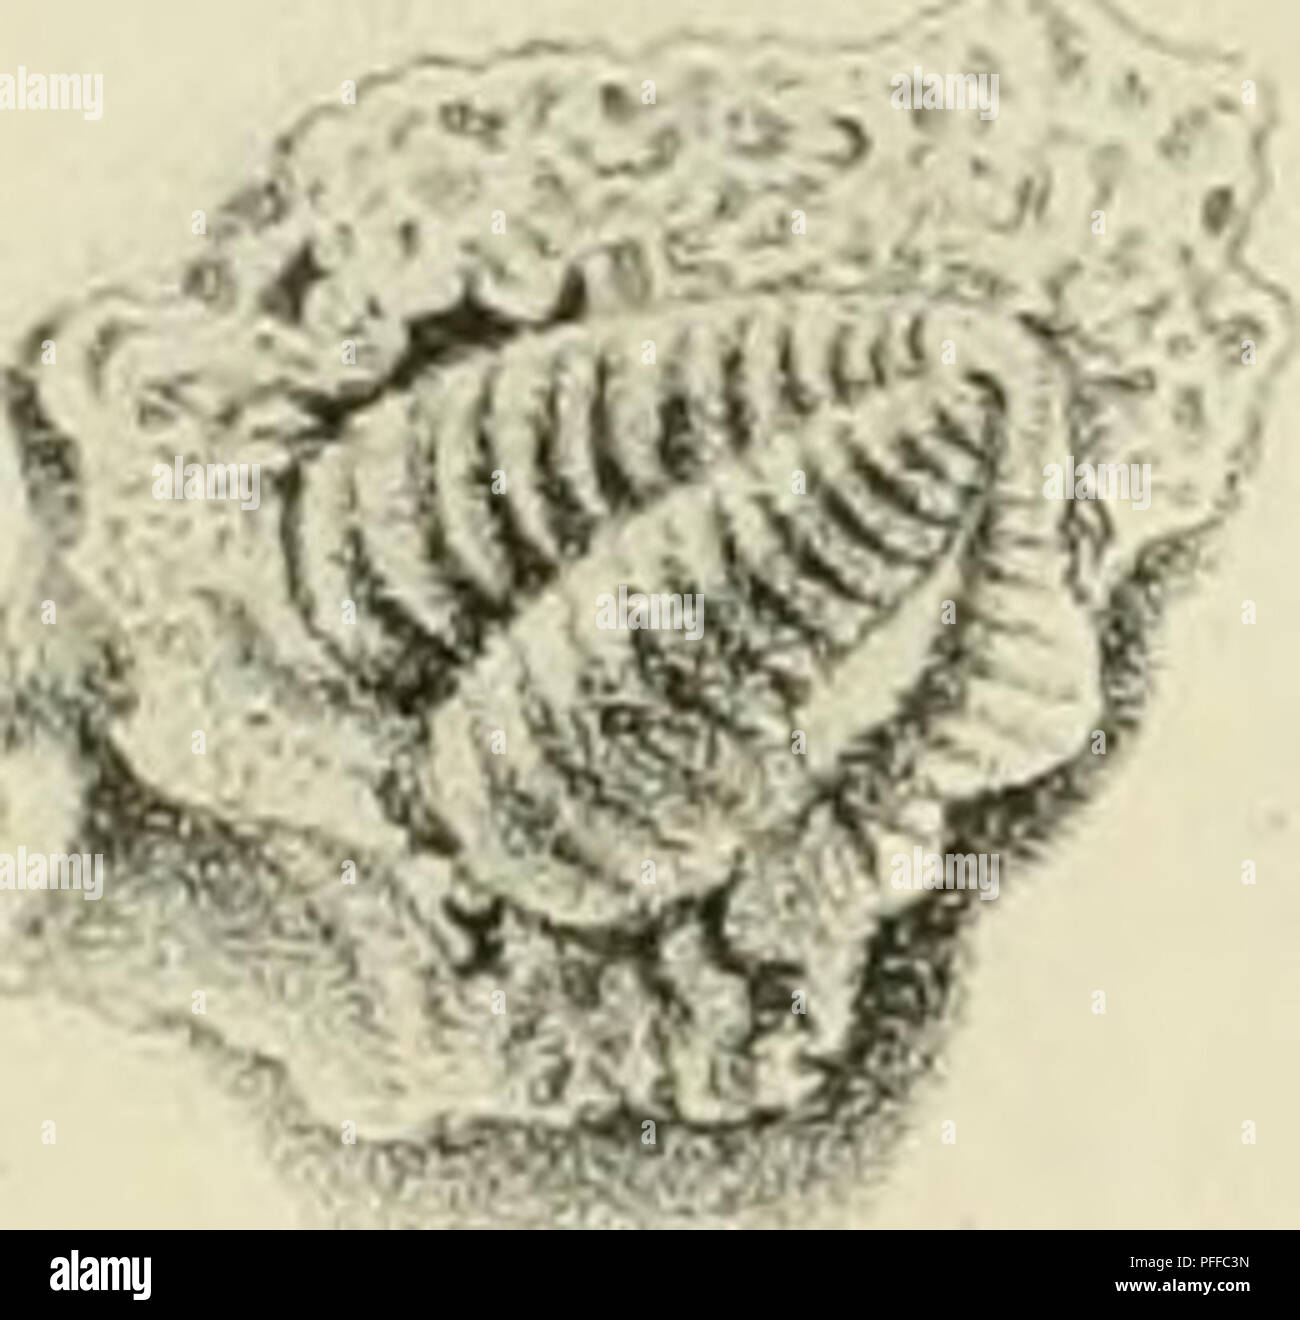 . D. Eduardi Eichwaldi, publ. ord. apud Casanens. Profess. Acad. Caes. Nat. Cur. Leop. Carol. mult. Societ. Liter. Socii, Geognostico-zoologicae per ingriam marisque Baltici provincias nec non de trilobitis observationes. Geology; Zoology; Paleontology. J-y. /. 6. _'-:''?&». //</ -.7. /.. Please note that these images are extracted from scanned page images that may have been digitally enhanced for readability - coloration and appearance of these illustrations may not perfectly resemble the original work.. Eichwald, Carl Eduard von, 1795-1876; Kazanski universitet. Casani : Typis Univers - Stock Image